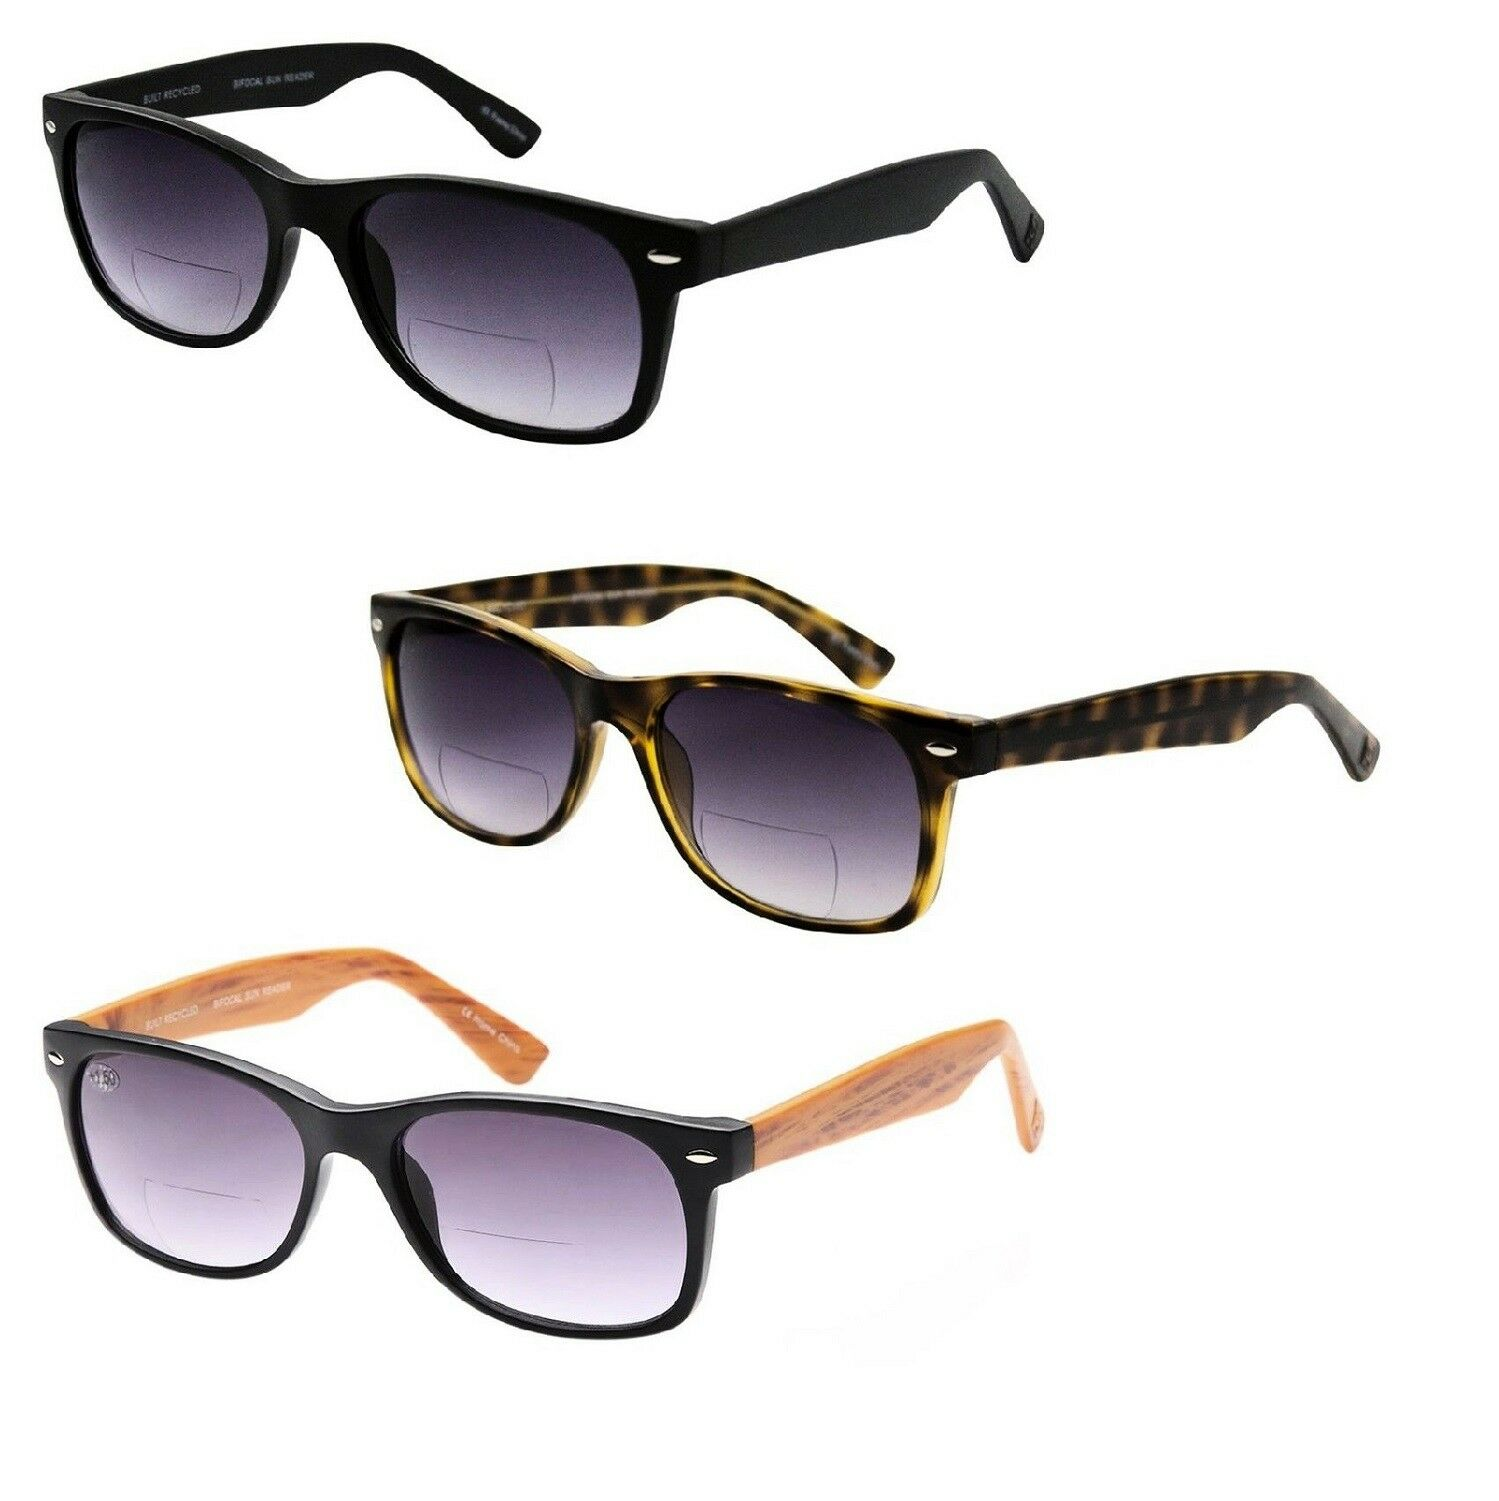 3 PACK Bifocal Sunglasses Readers UV400 Protection Magnifica